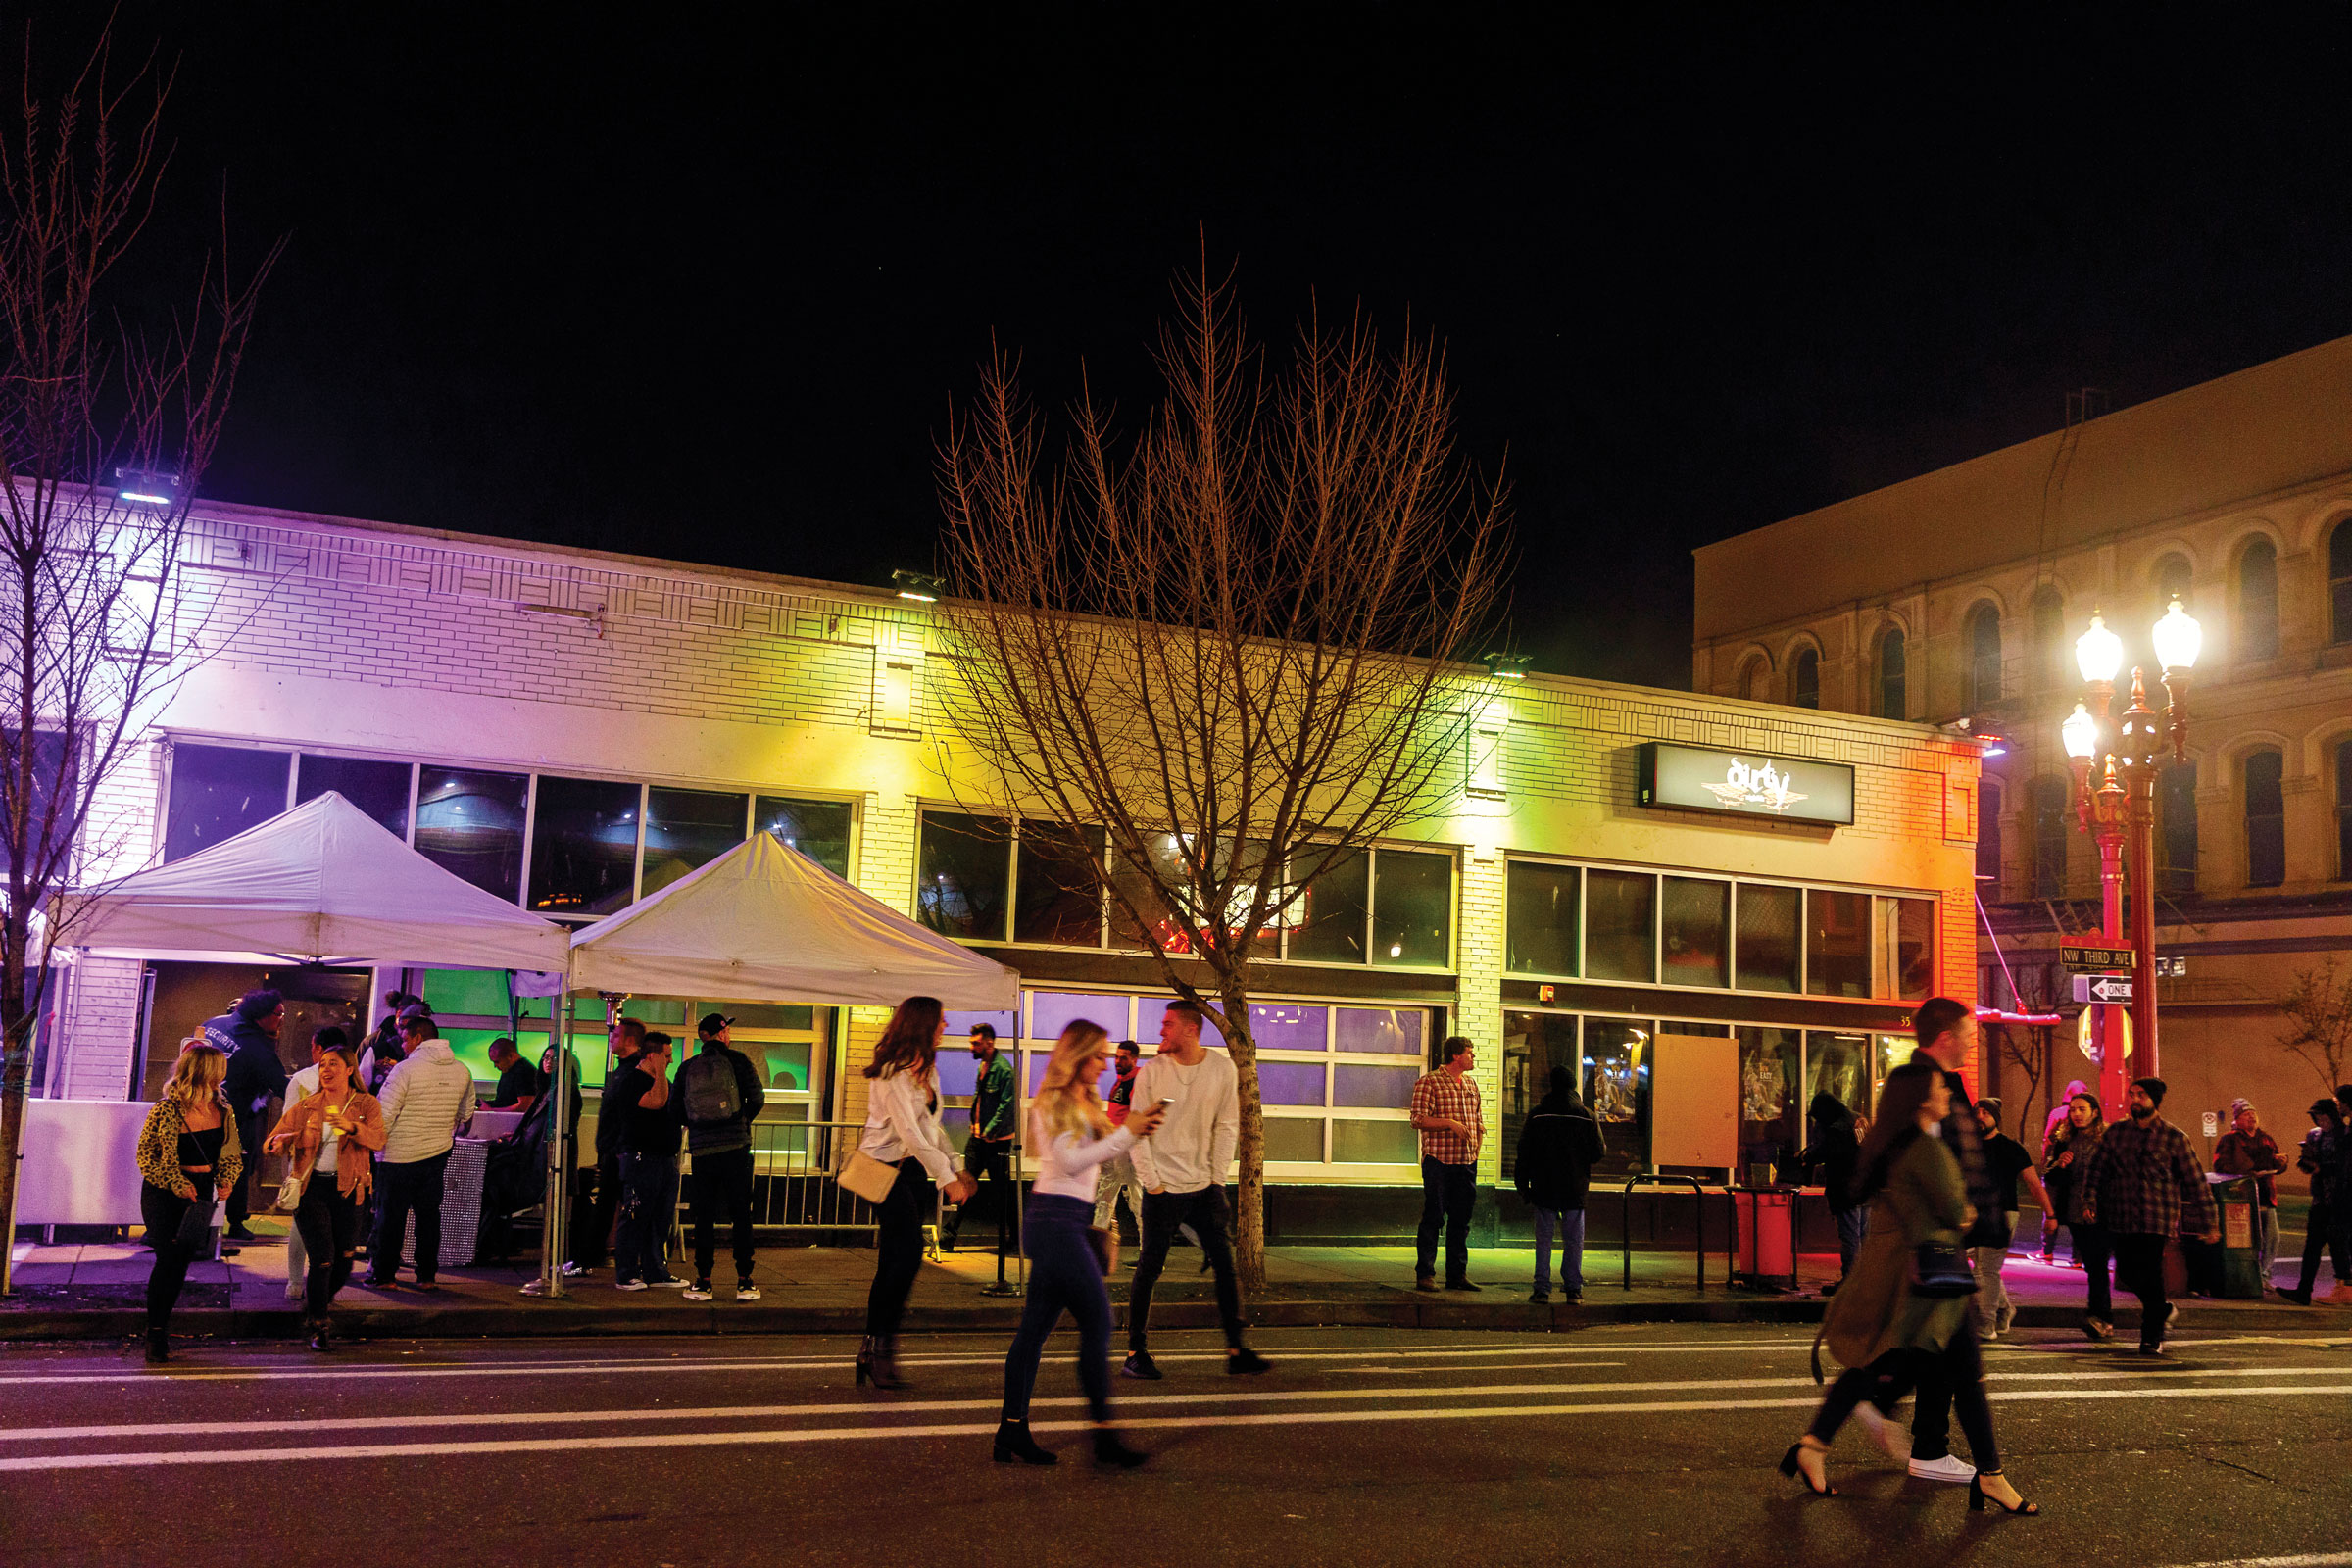 Racist policing plagues Portland's nightclubs